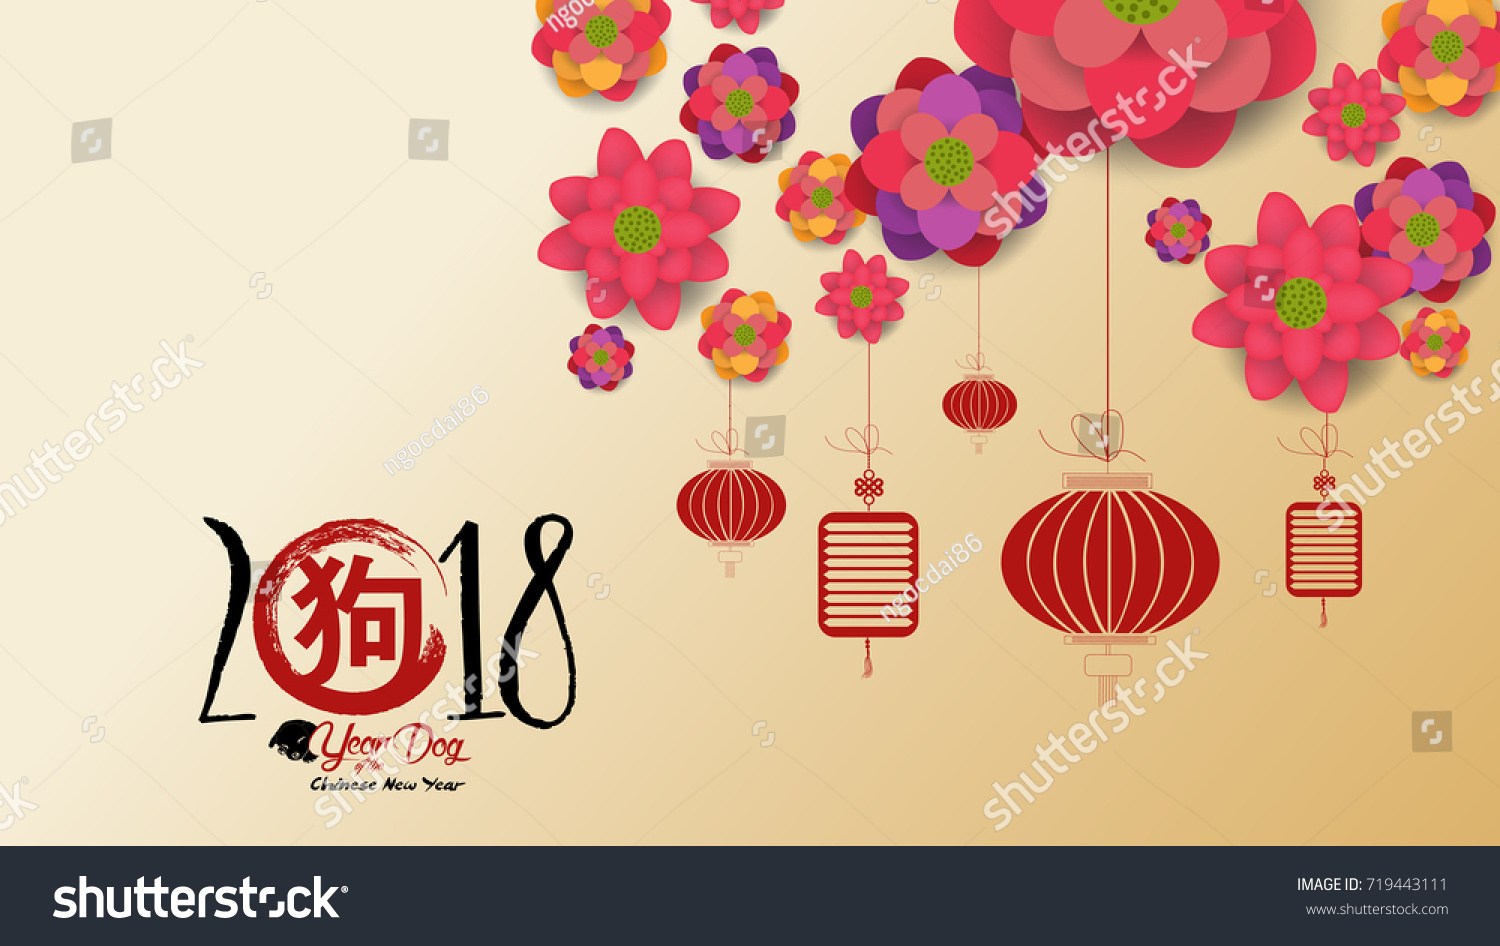 Famous New Year Wall Decorations Ideas - The Wall Art Decorations ...